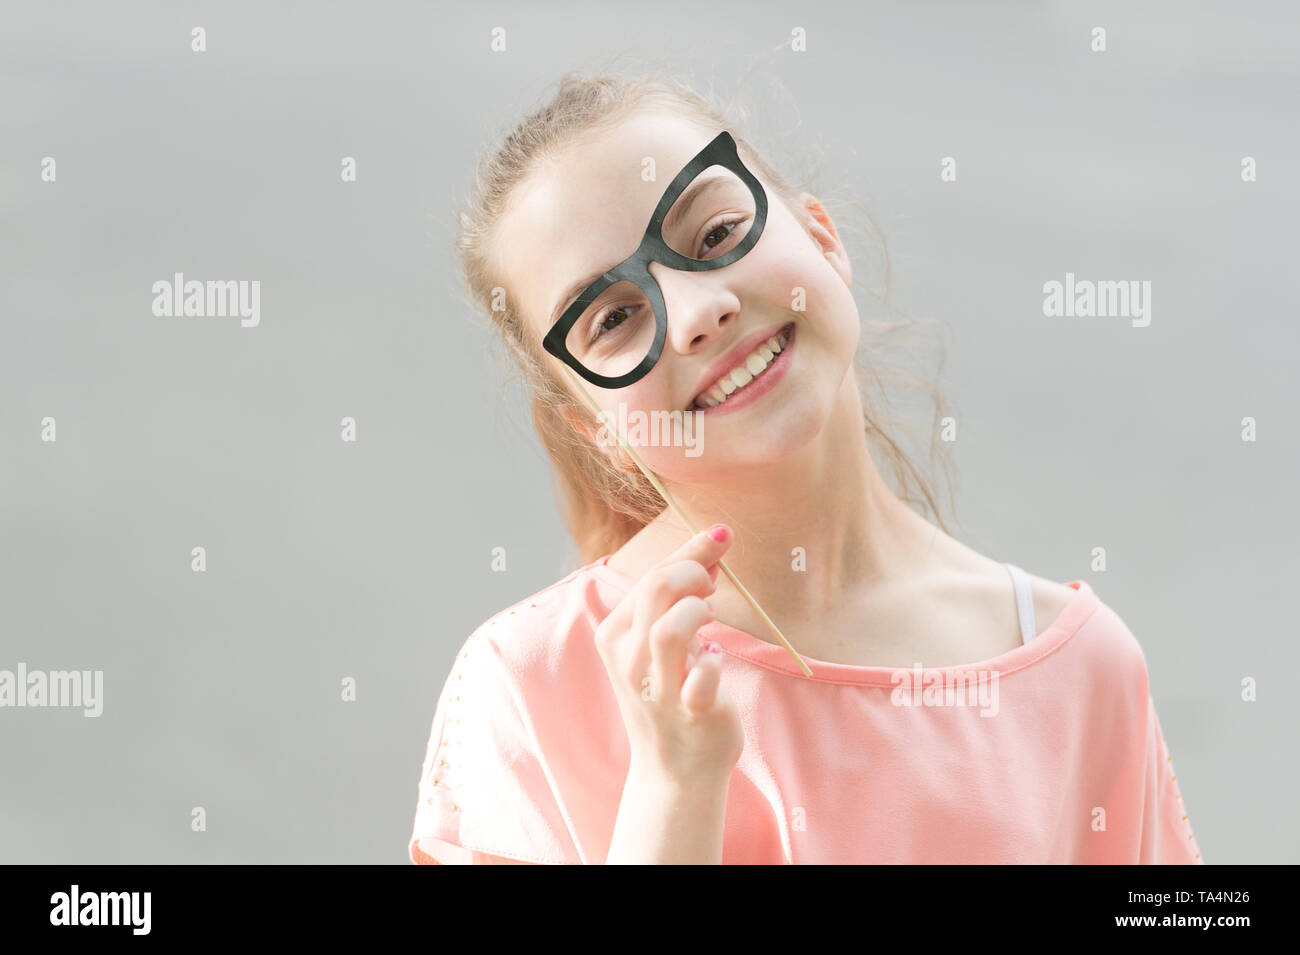 3be142a3d6d6 Small smiling girl with funny look through prop glasses. Happy little child  with adorable face shining with happiness. Children bring so much happiness.